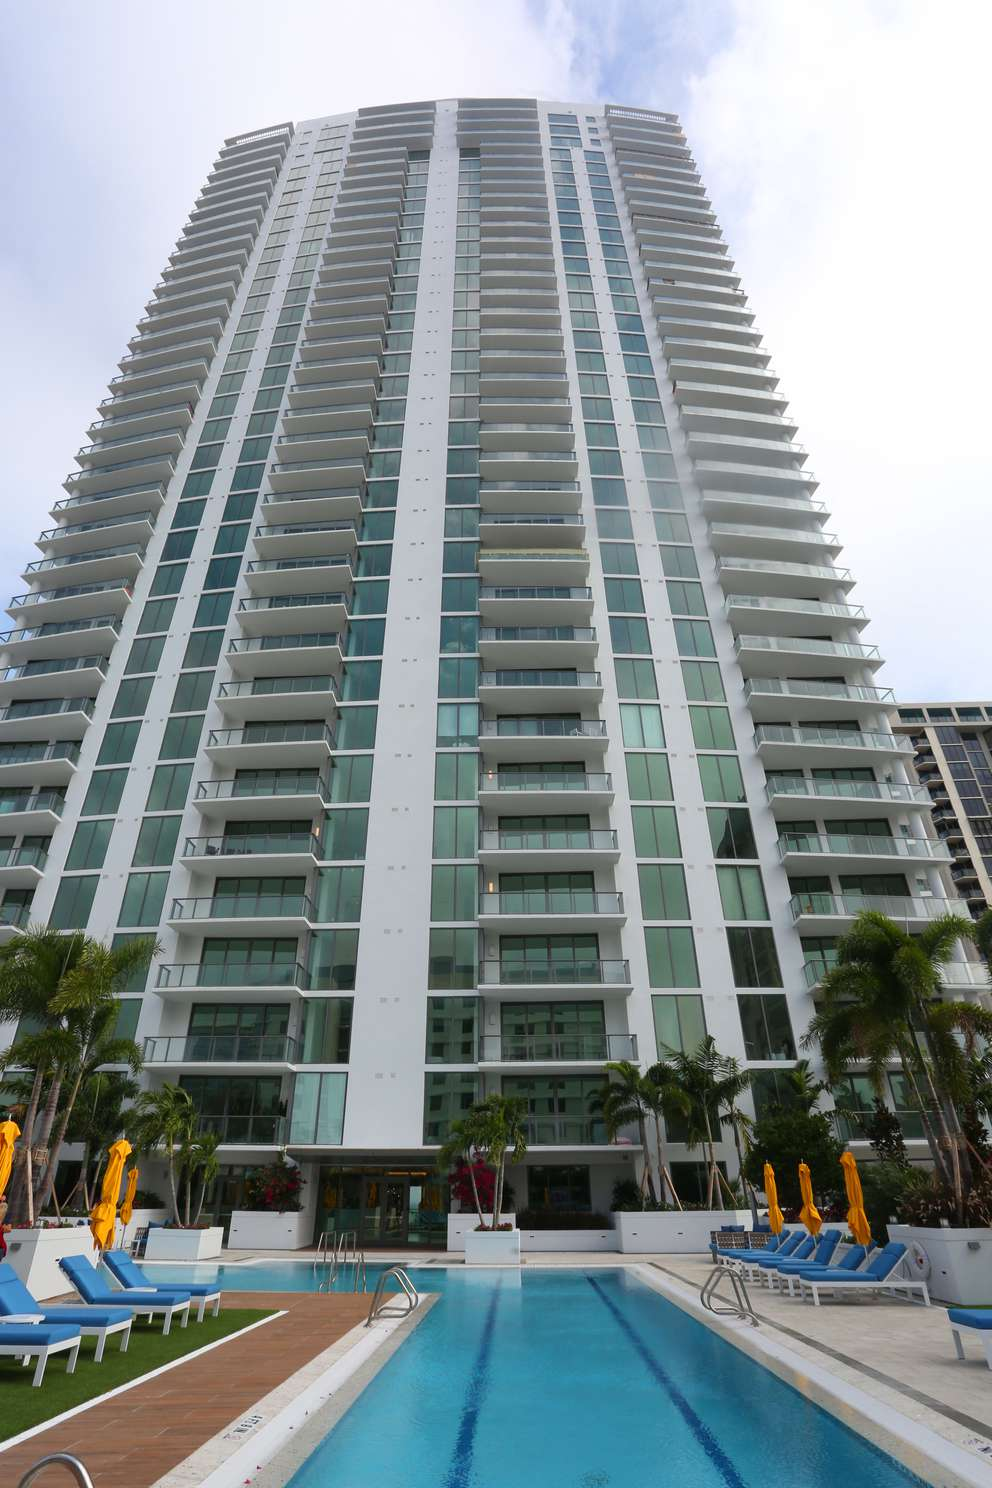 A buyer from the Cayman Islands paid $910,700 for a condo in ONE St. Petersburg. [SCOTT KEELER | Times] [SCOTT KEELER | Times]